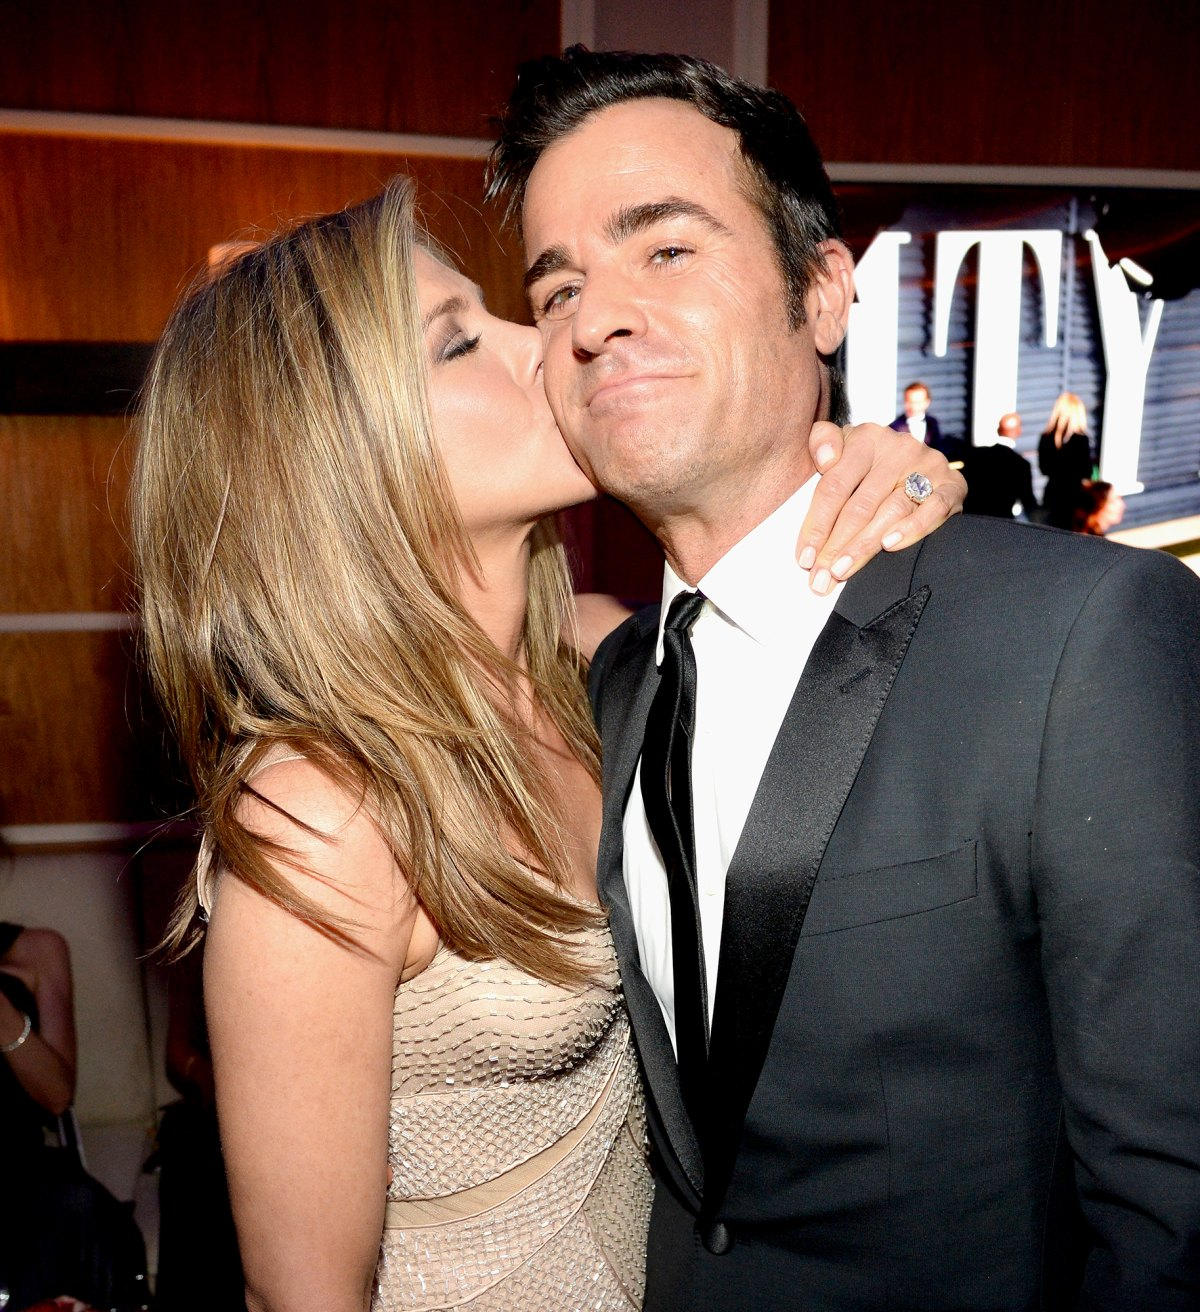 Dating aniston who jennifer Who Is